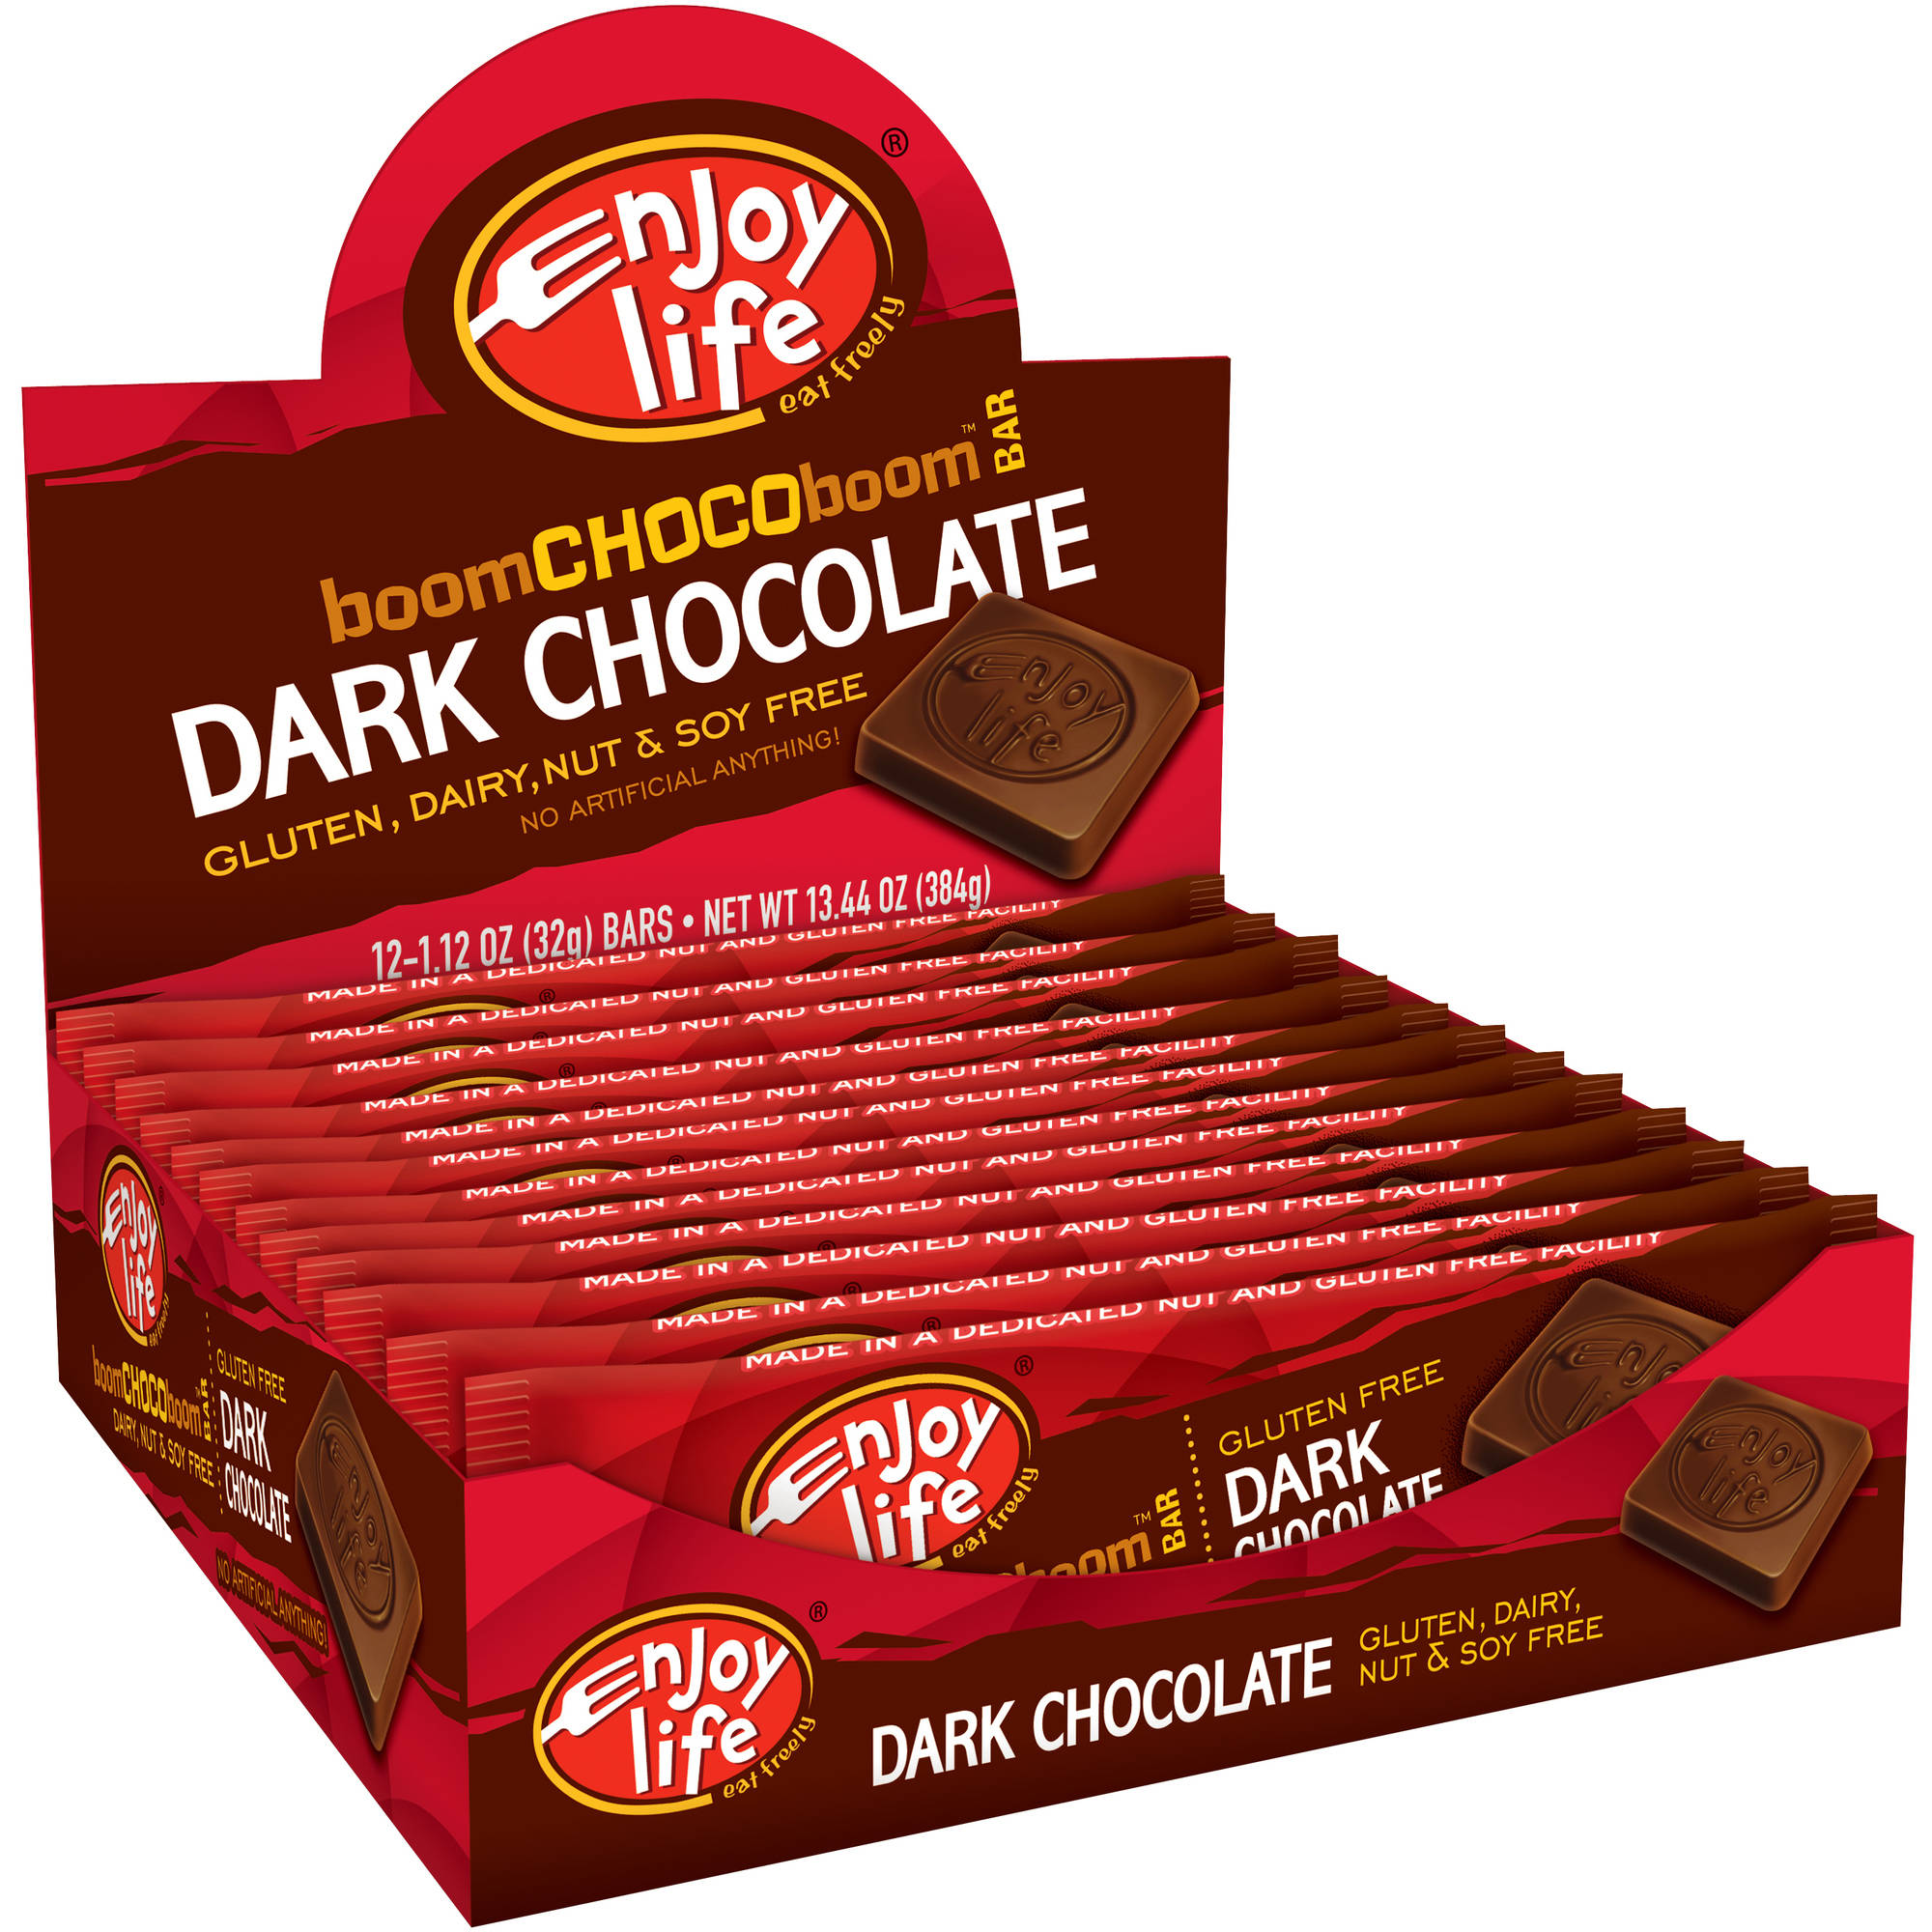 Enjoy Life Dark Chocolate boomCHOCOboom Bars, 1.12 oz (Pack of 24)